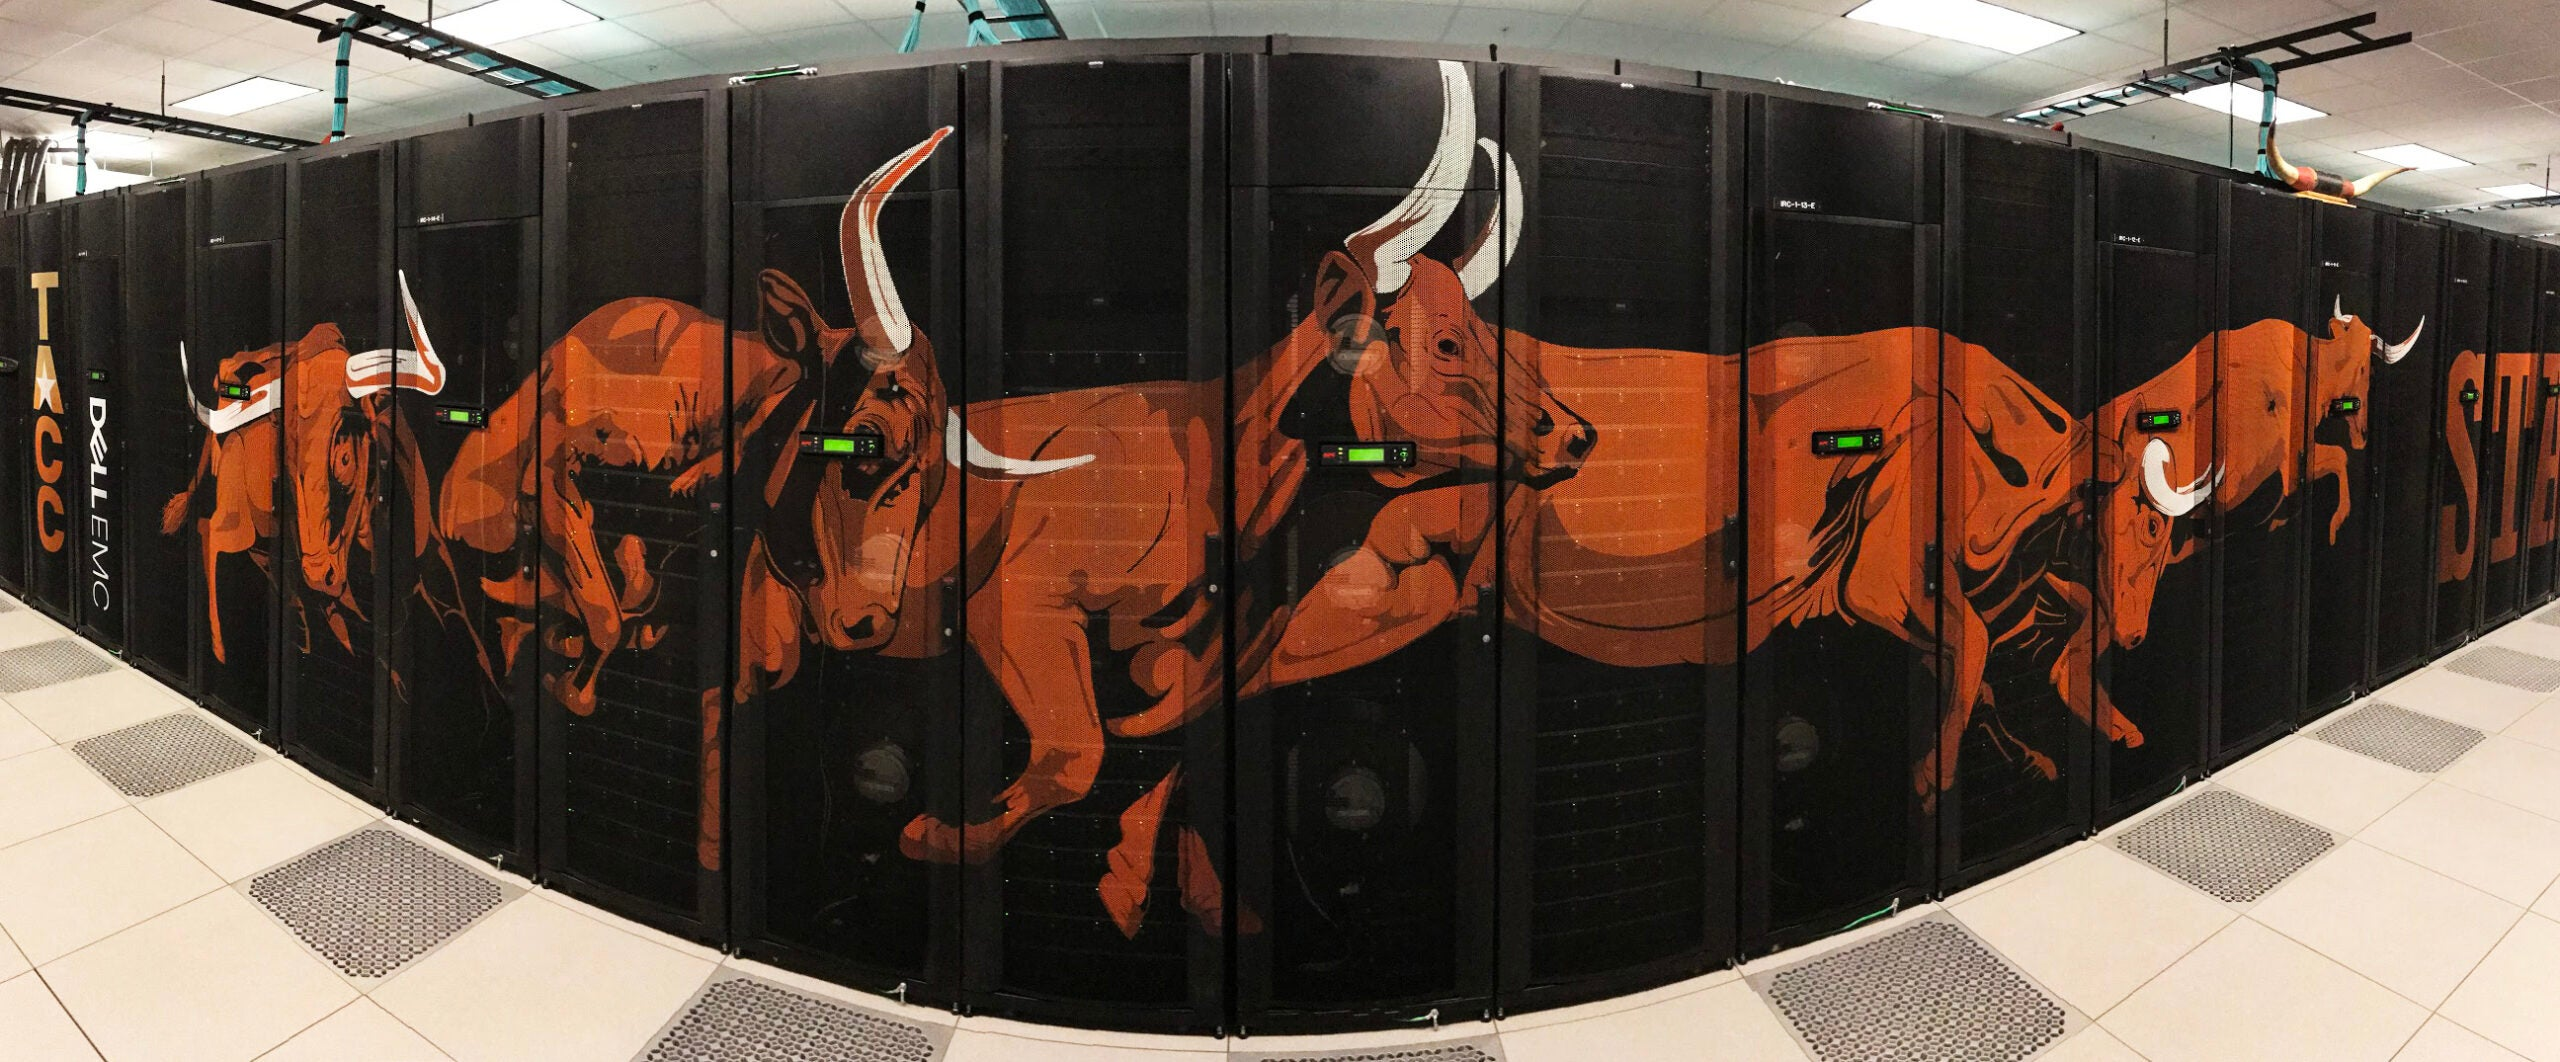 University supercomputers are science's unsung heroes, and Texas will get the fastest yet